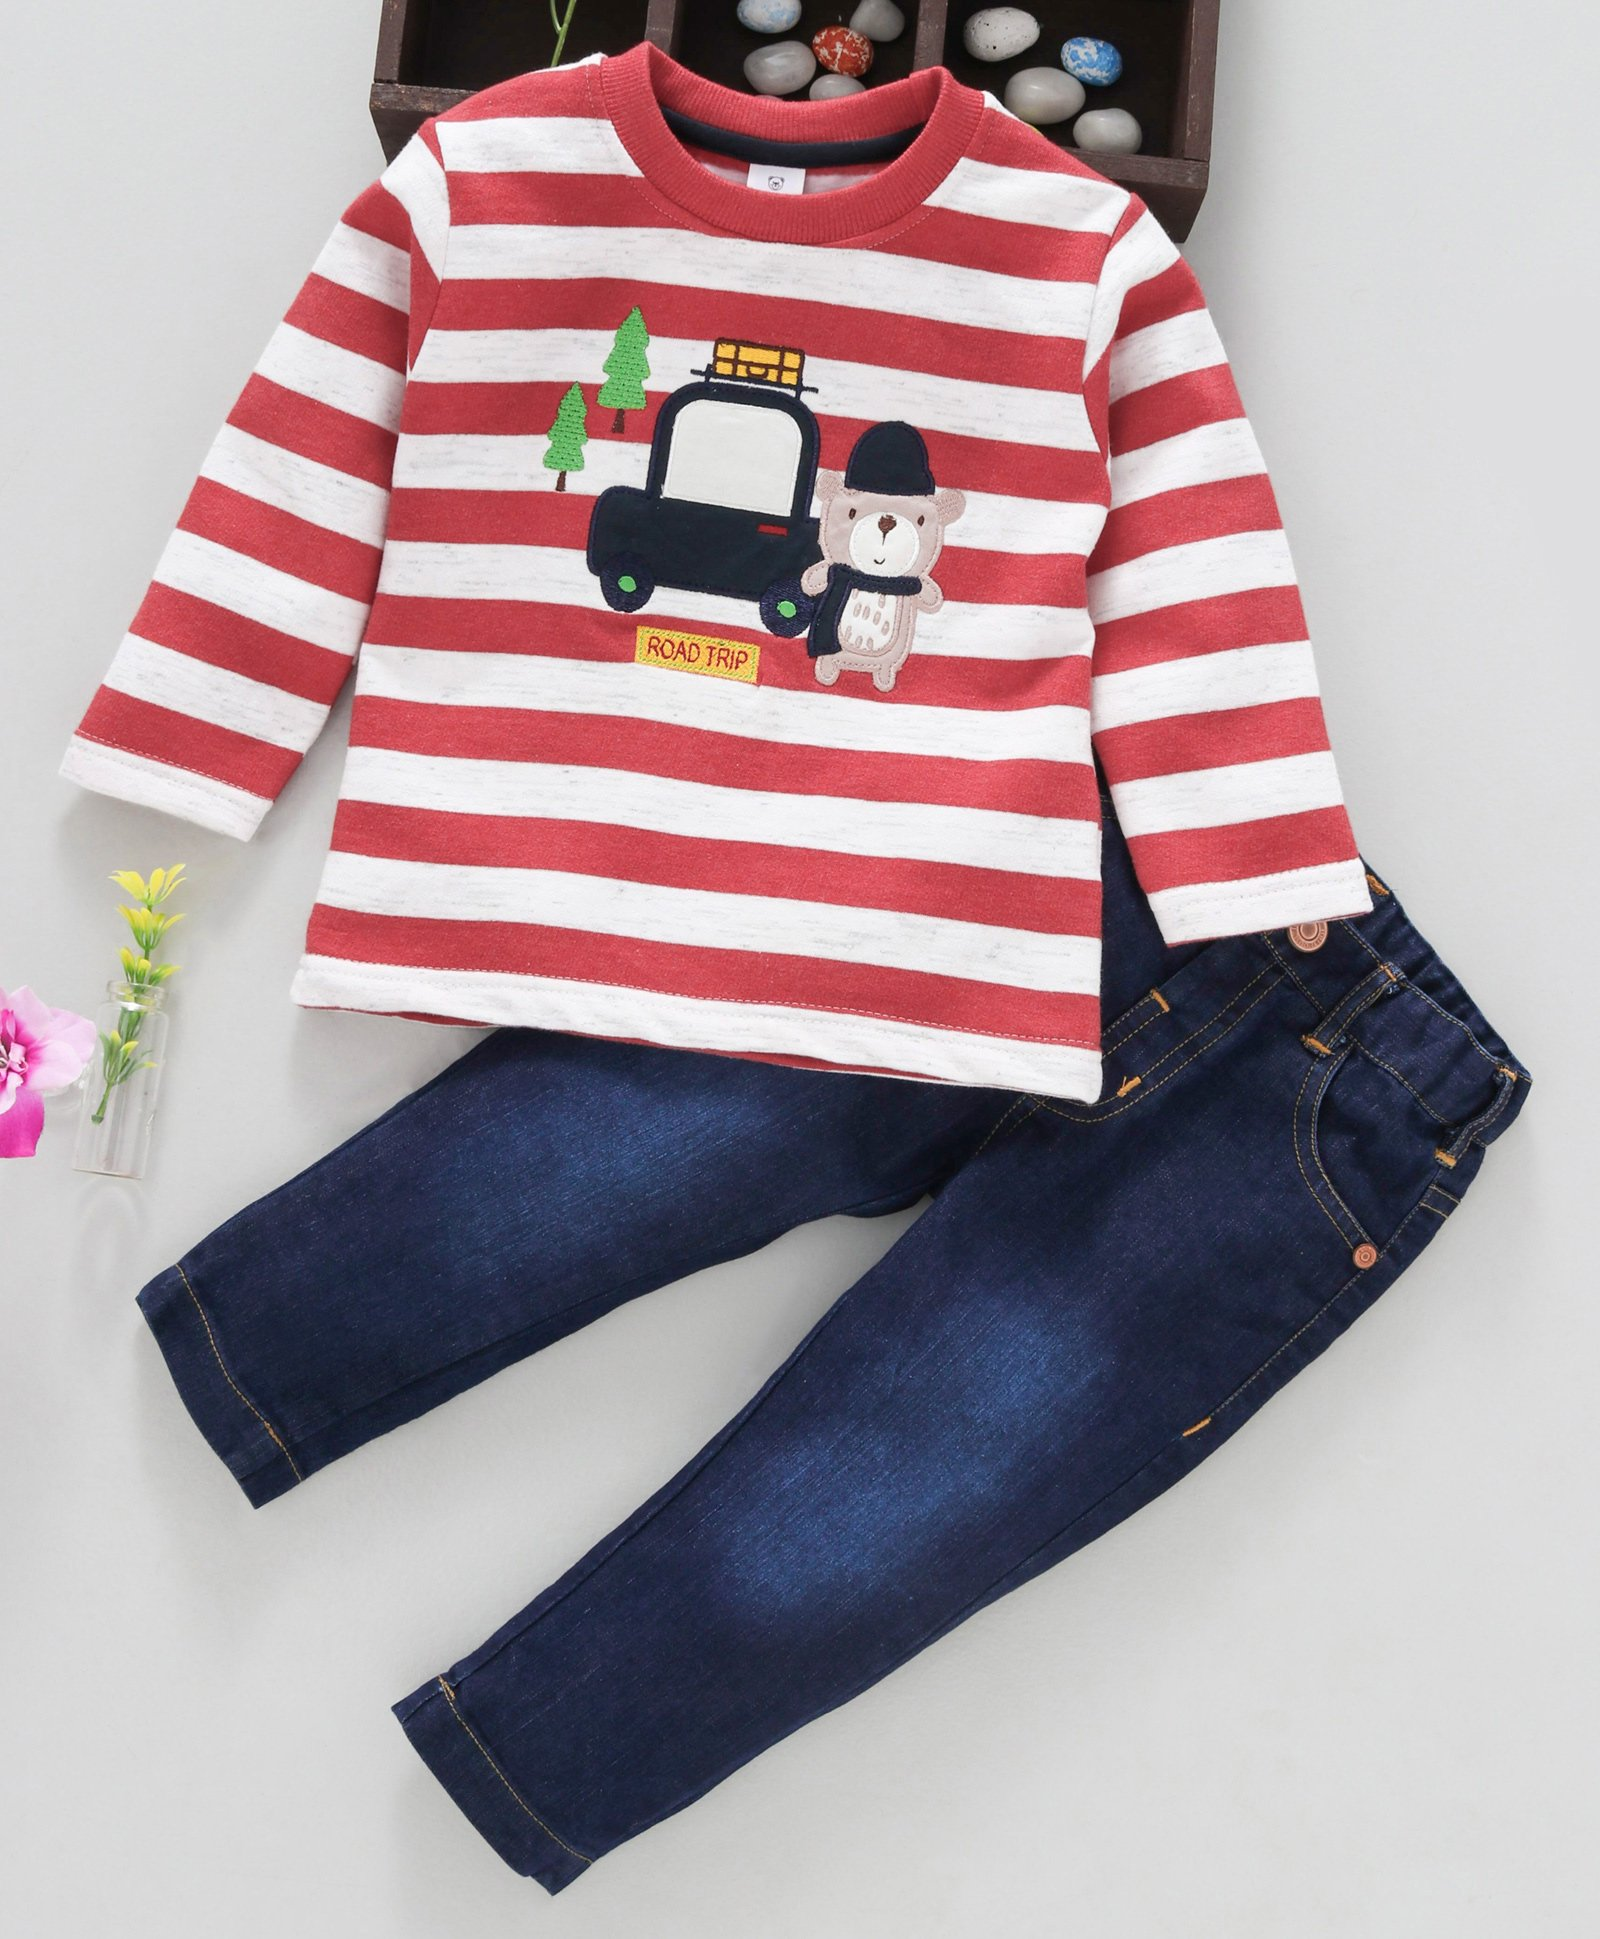 Buy ToffyHouse Full Sleeves Striped TShirt & Jeans Road Trip Patch Red &  Blue for Boys (12-18 Months) Online in India, Shop at FirstCry com - 2348363